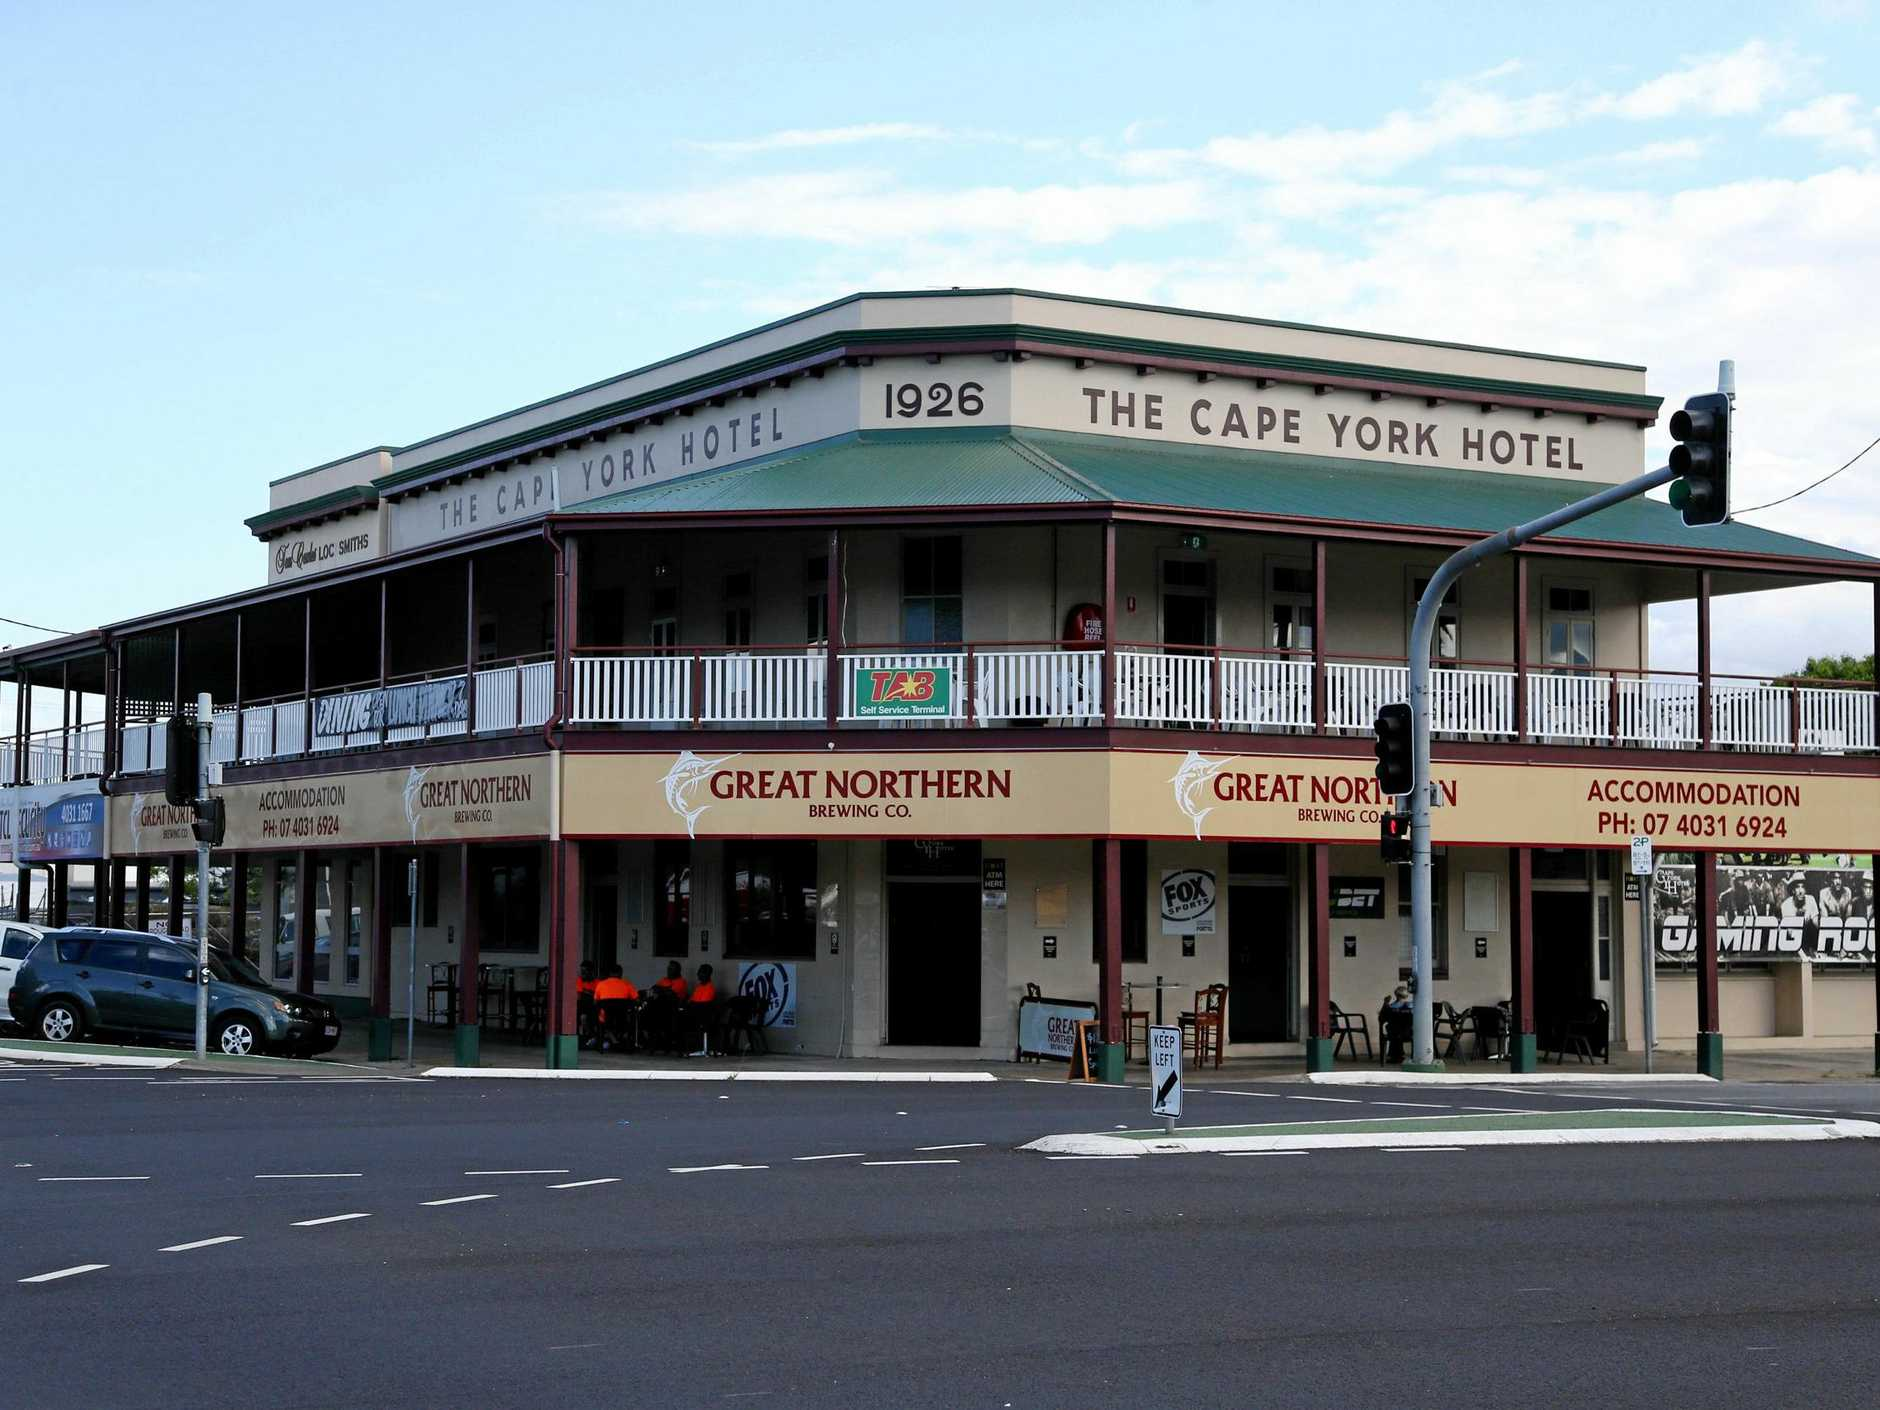 The historic Cape York Hotel.